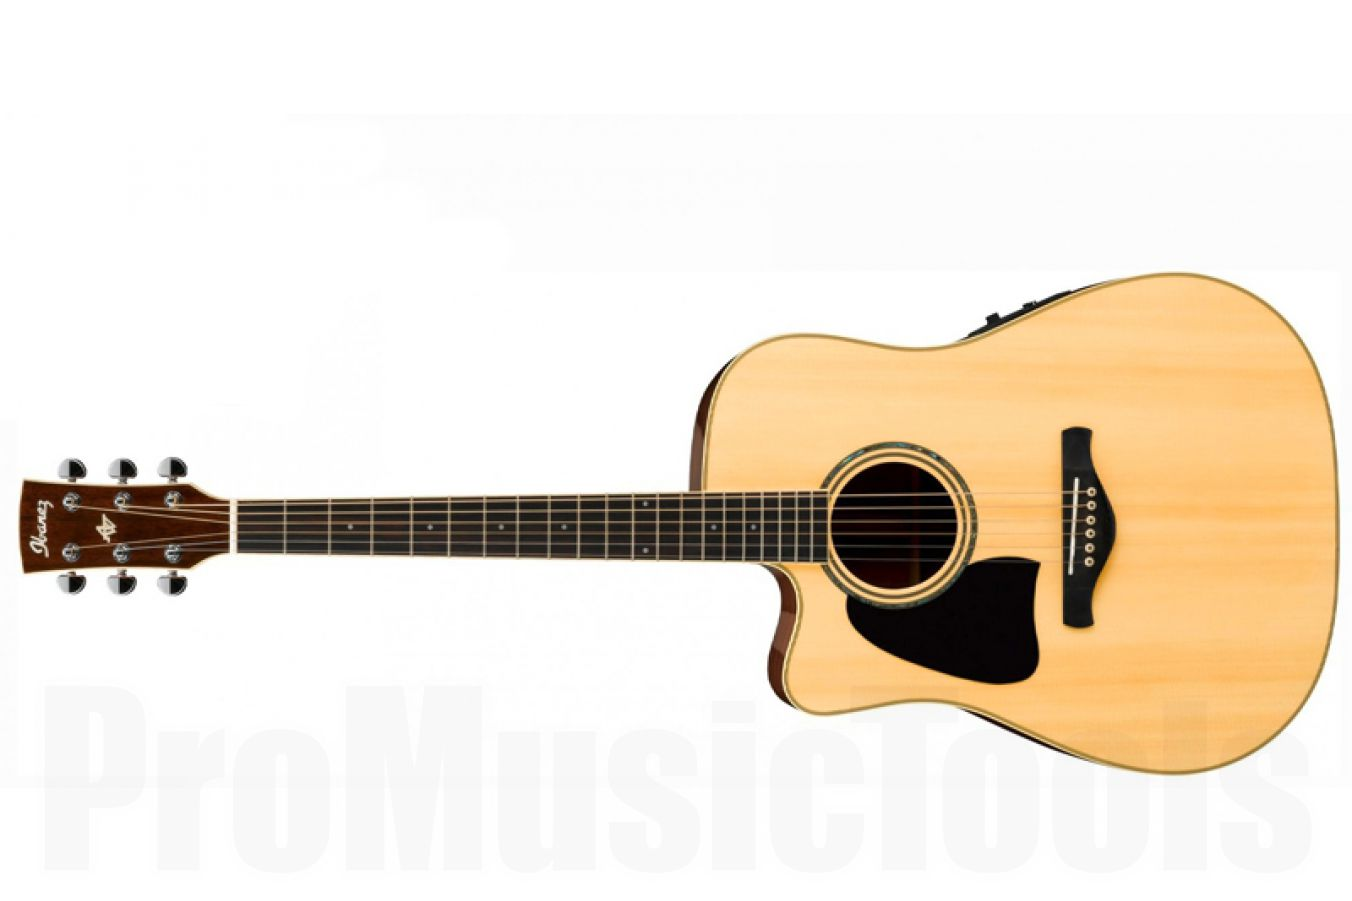 Ibanez AW300LECE NT Lefthand - Natural